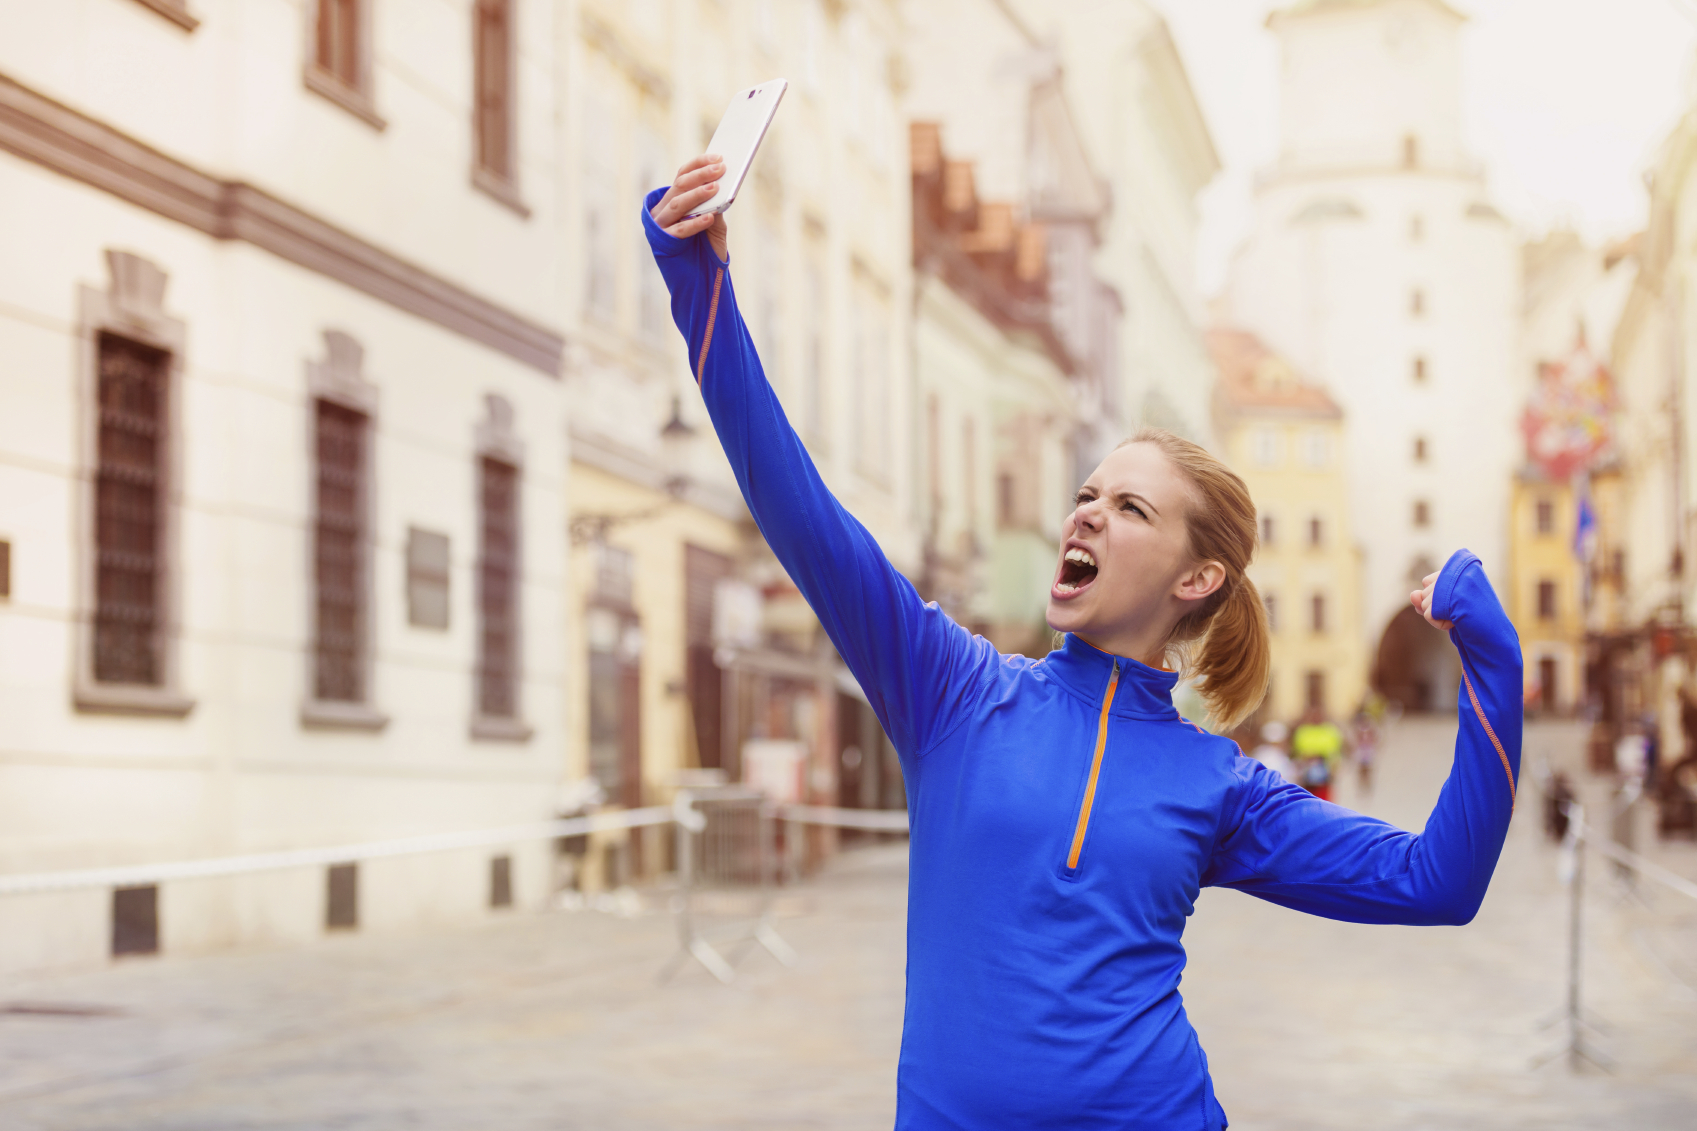 Beautiful young woman running in the city competition taking a selfie